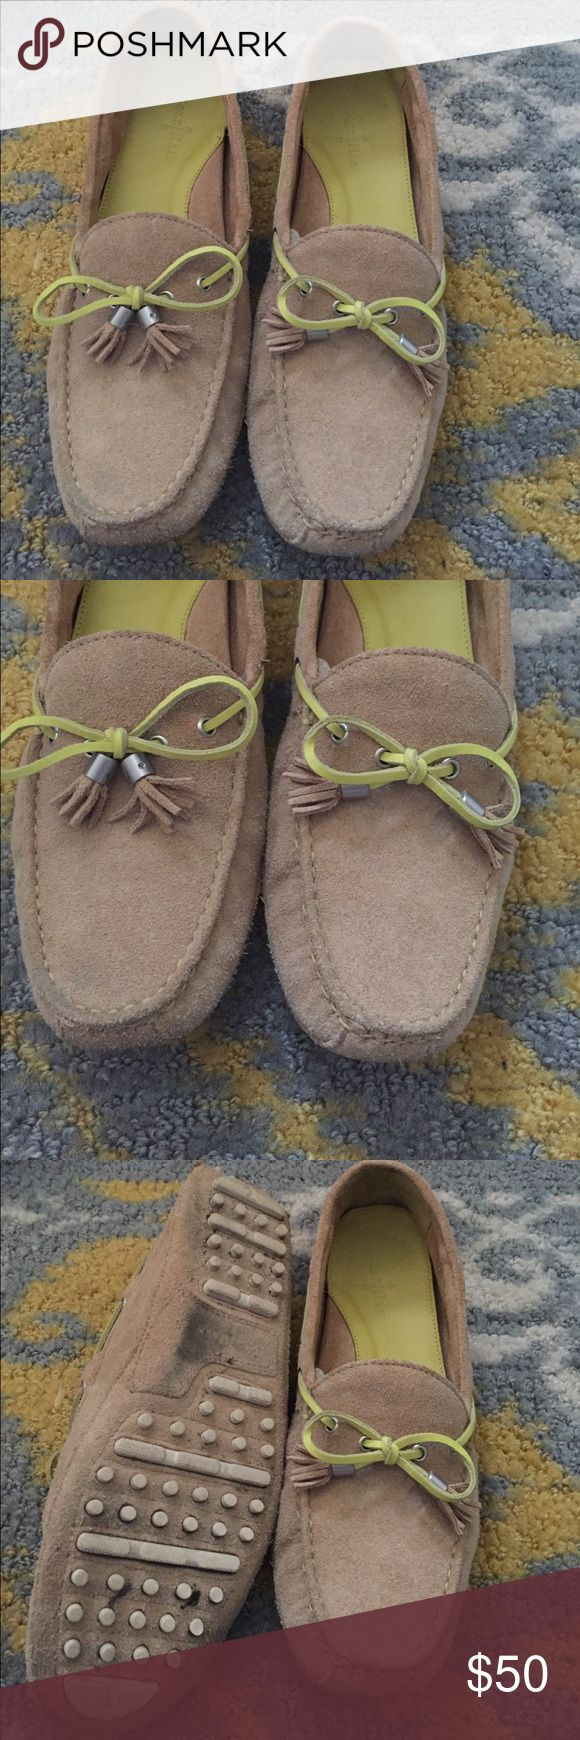 Cole Haan suede drivers Gently worn. Tan suede with neon yellow accent Cole Haan Shoes Flats & Loafers